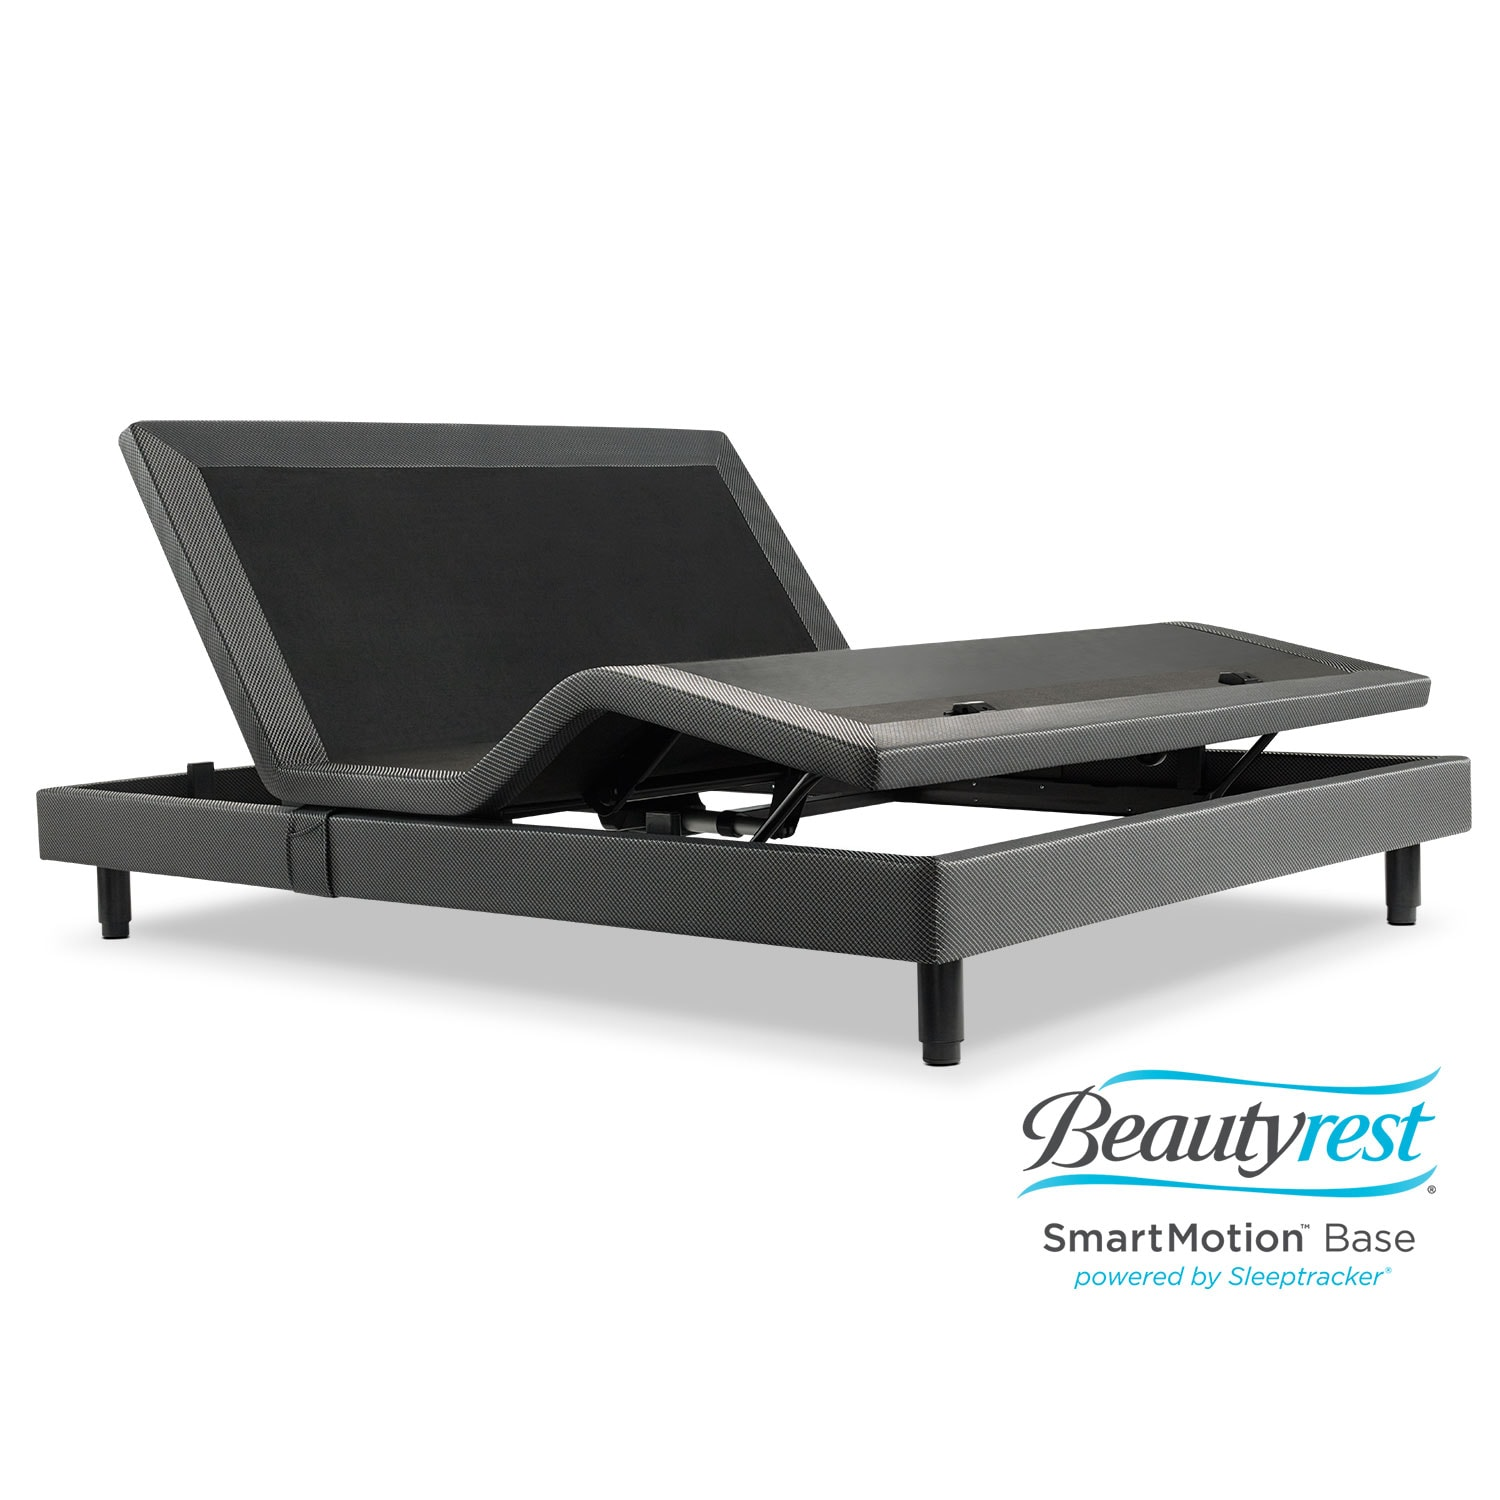 Beautyrest SmartMotion 2.0 King Split Adjustable Base